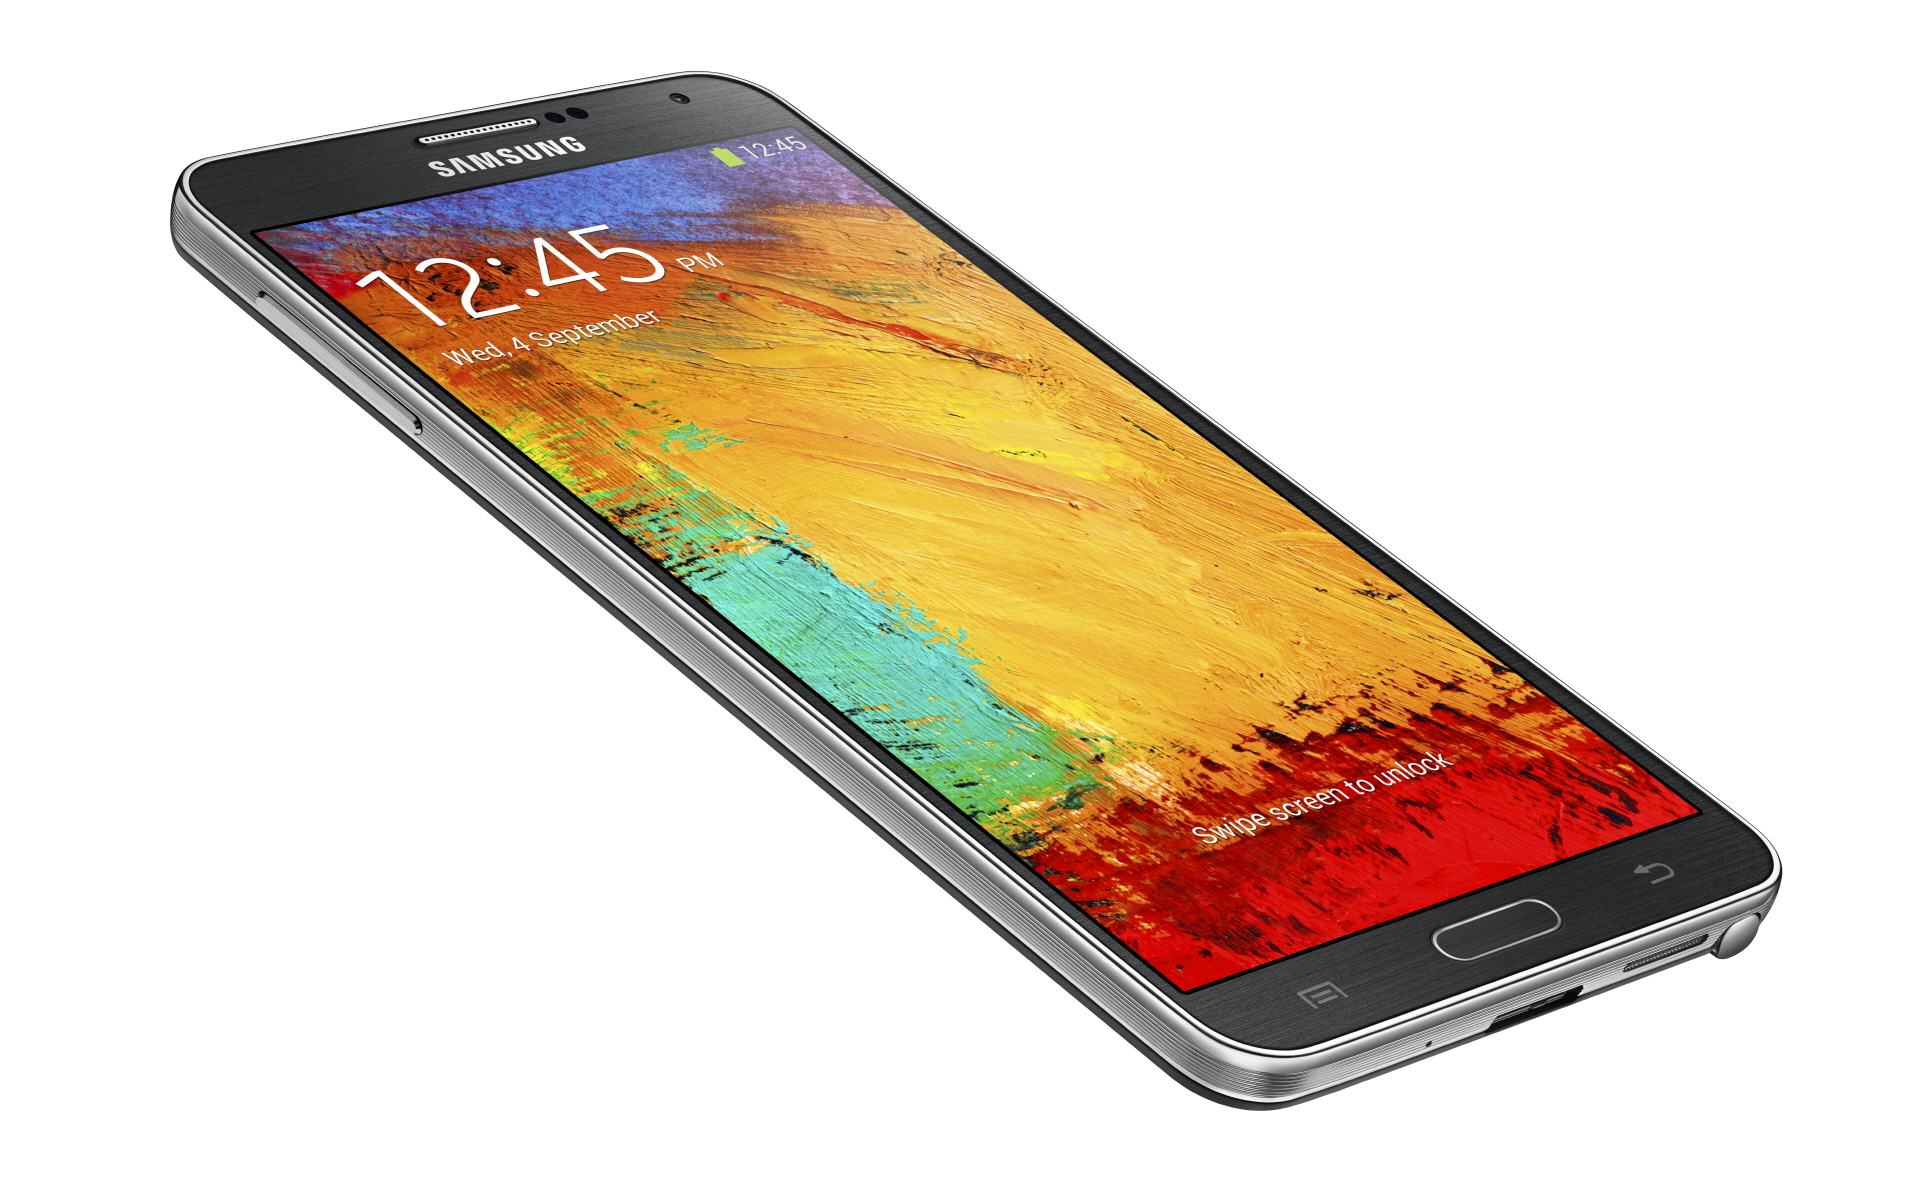 Samsung Galaxy Note 3 LTE